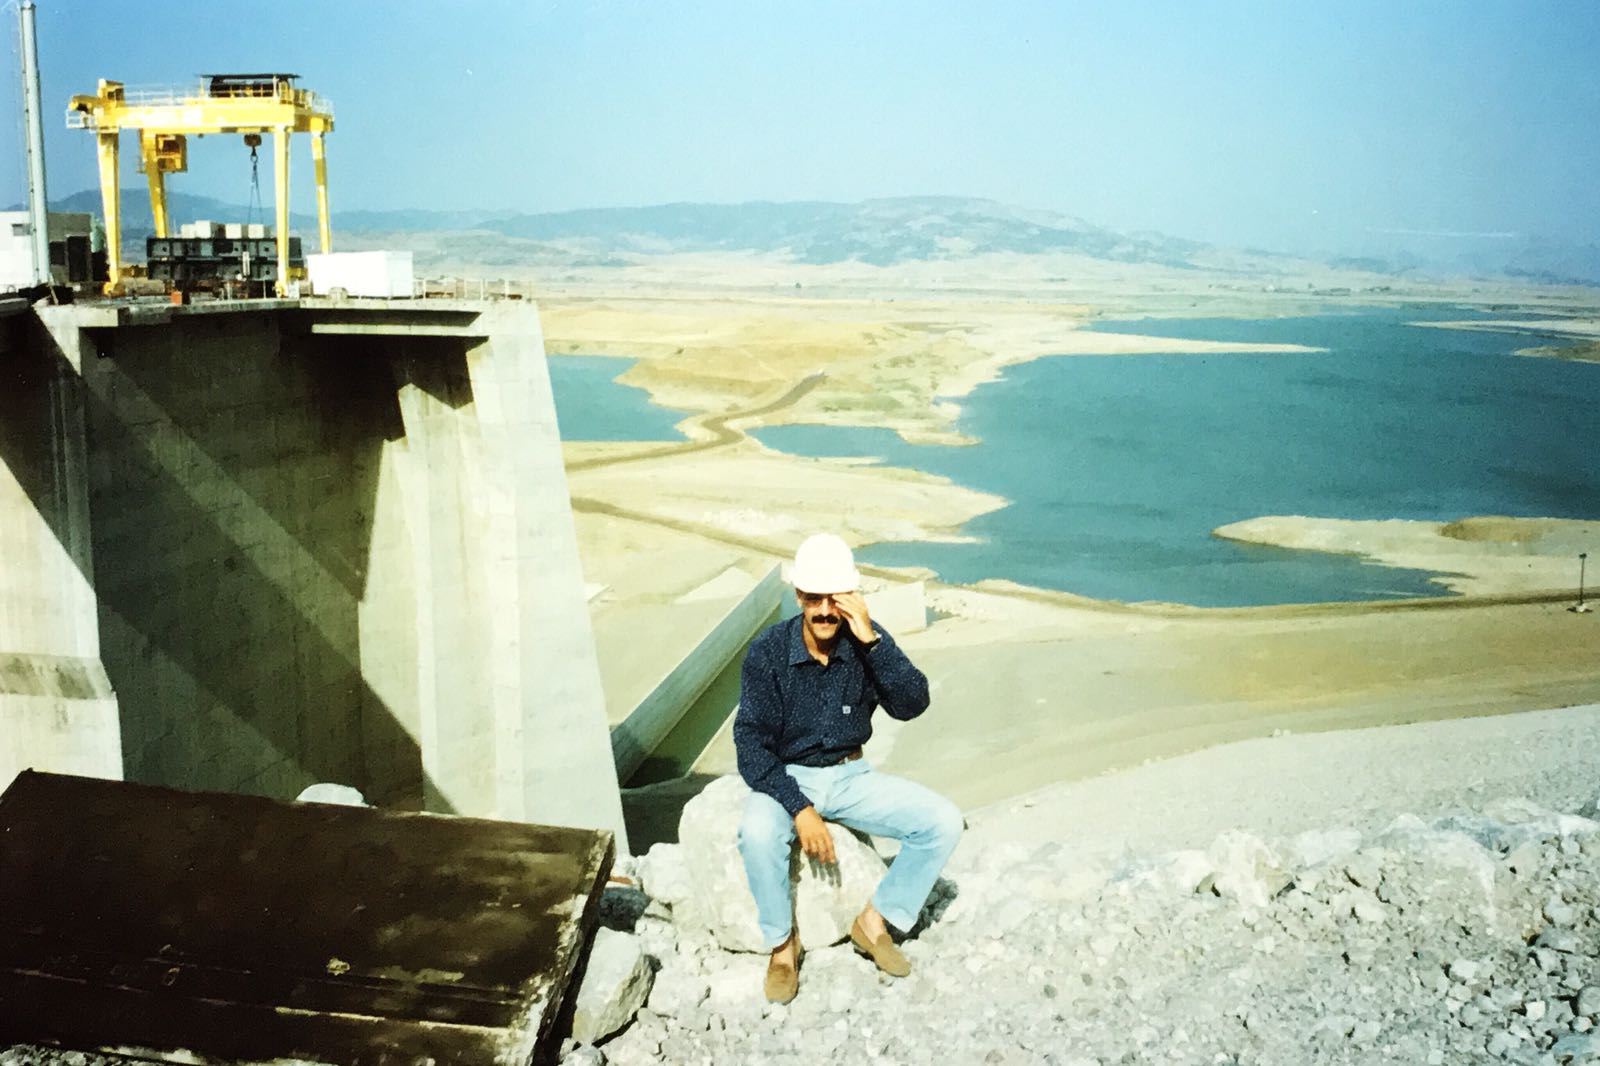 My dad, Khalid Hsain, was an engineer during the construction of the second ever dam on the African continent in Al Wahda, Morocco in 1996.